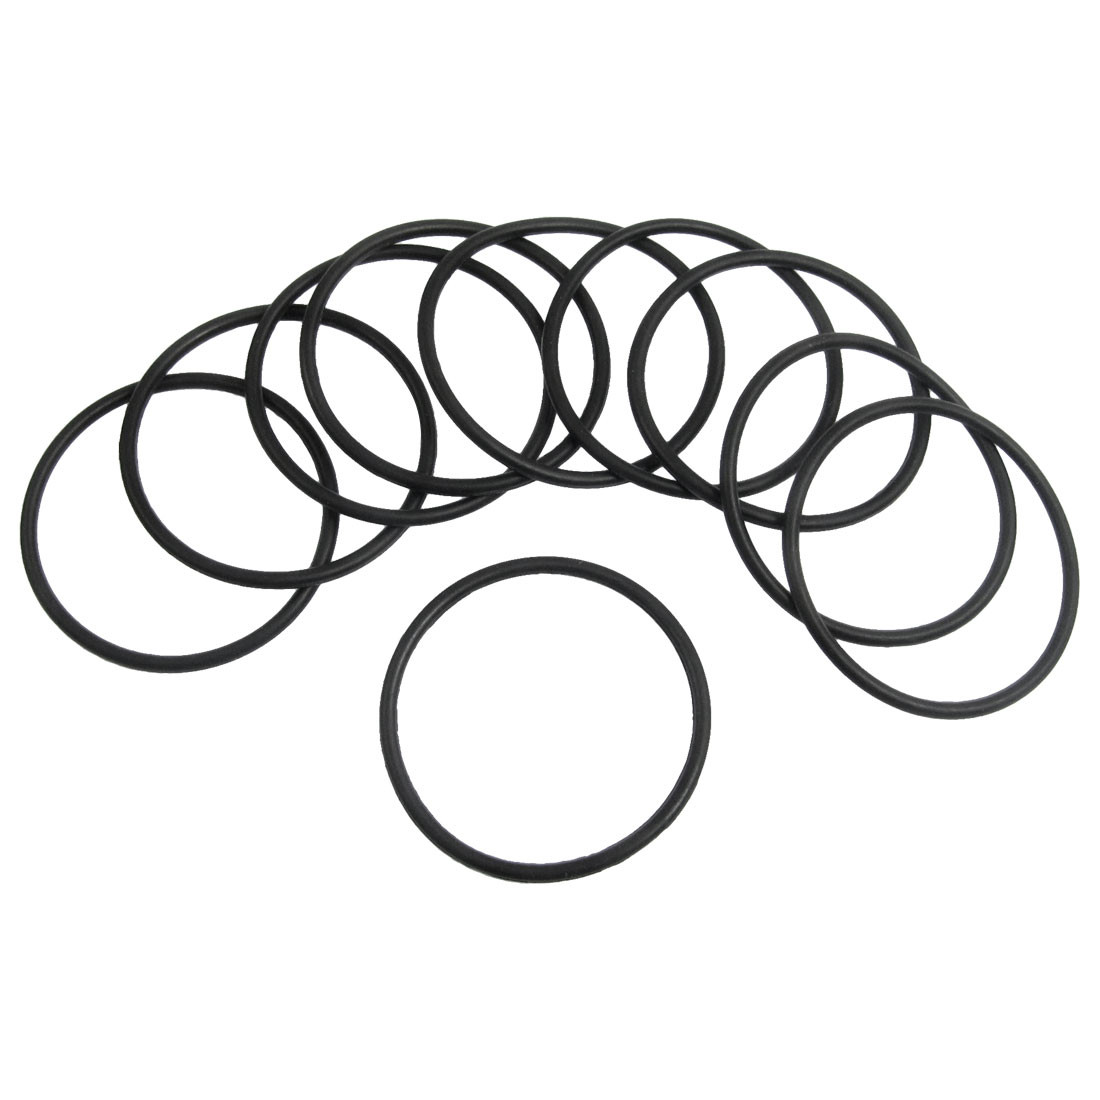 10 Pcs 42.5mm x 2.65mm Black Silicone O Rings Oil Seals Gaskets